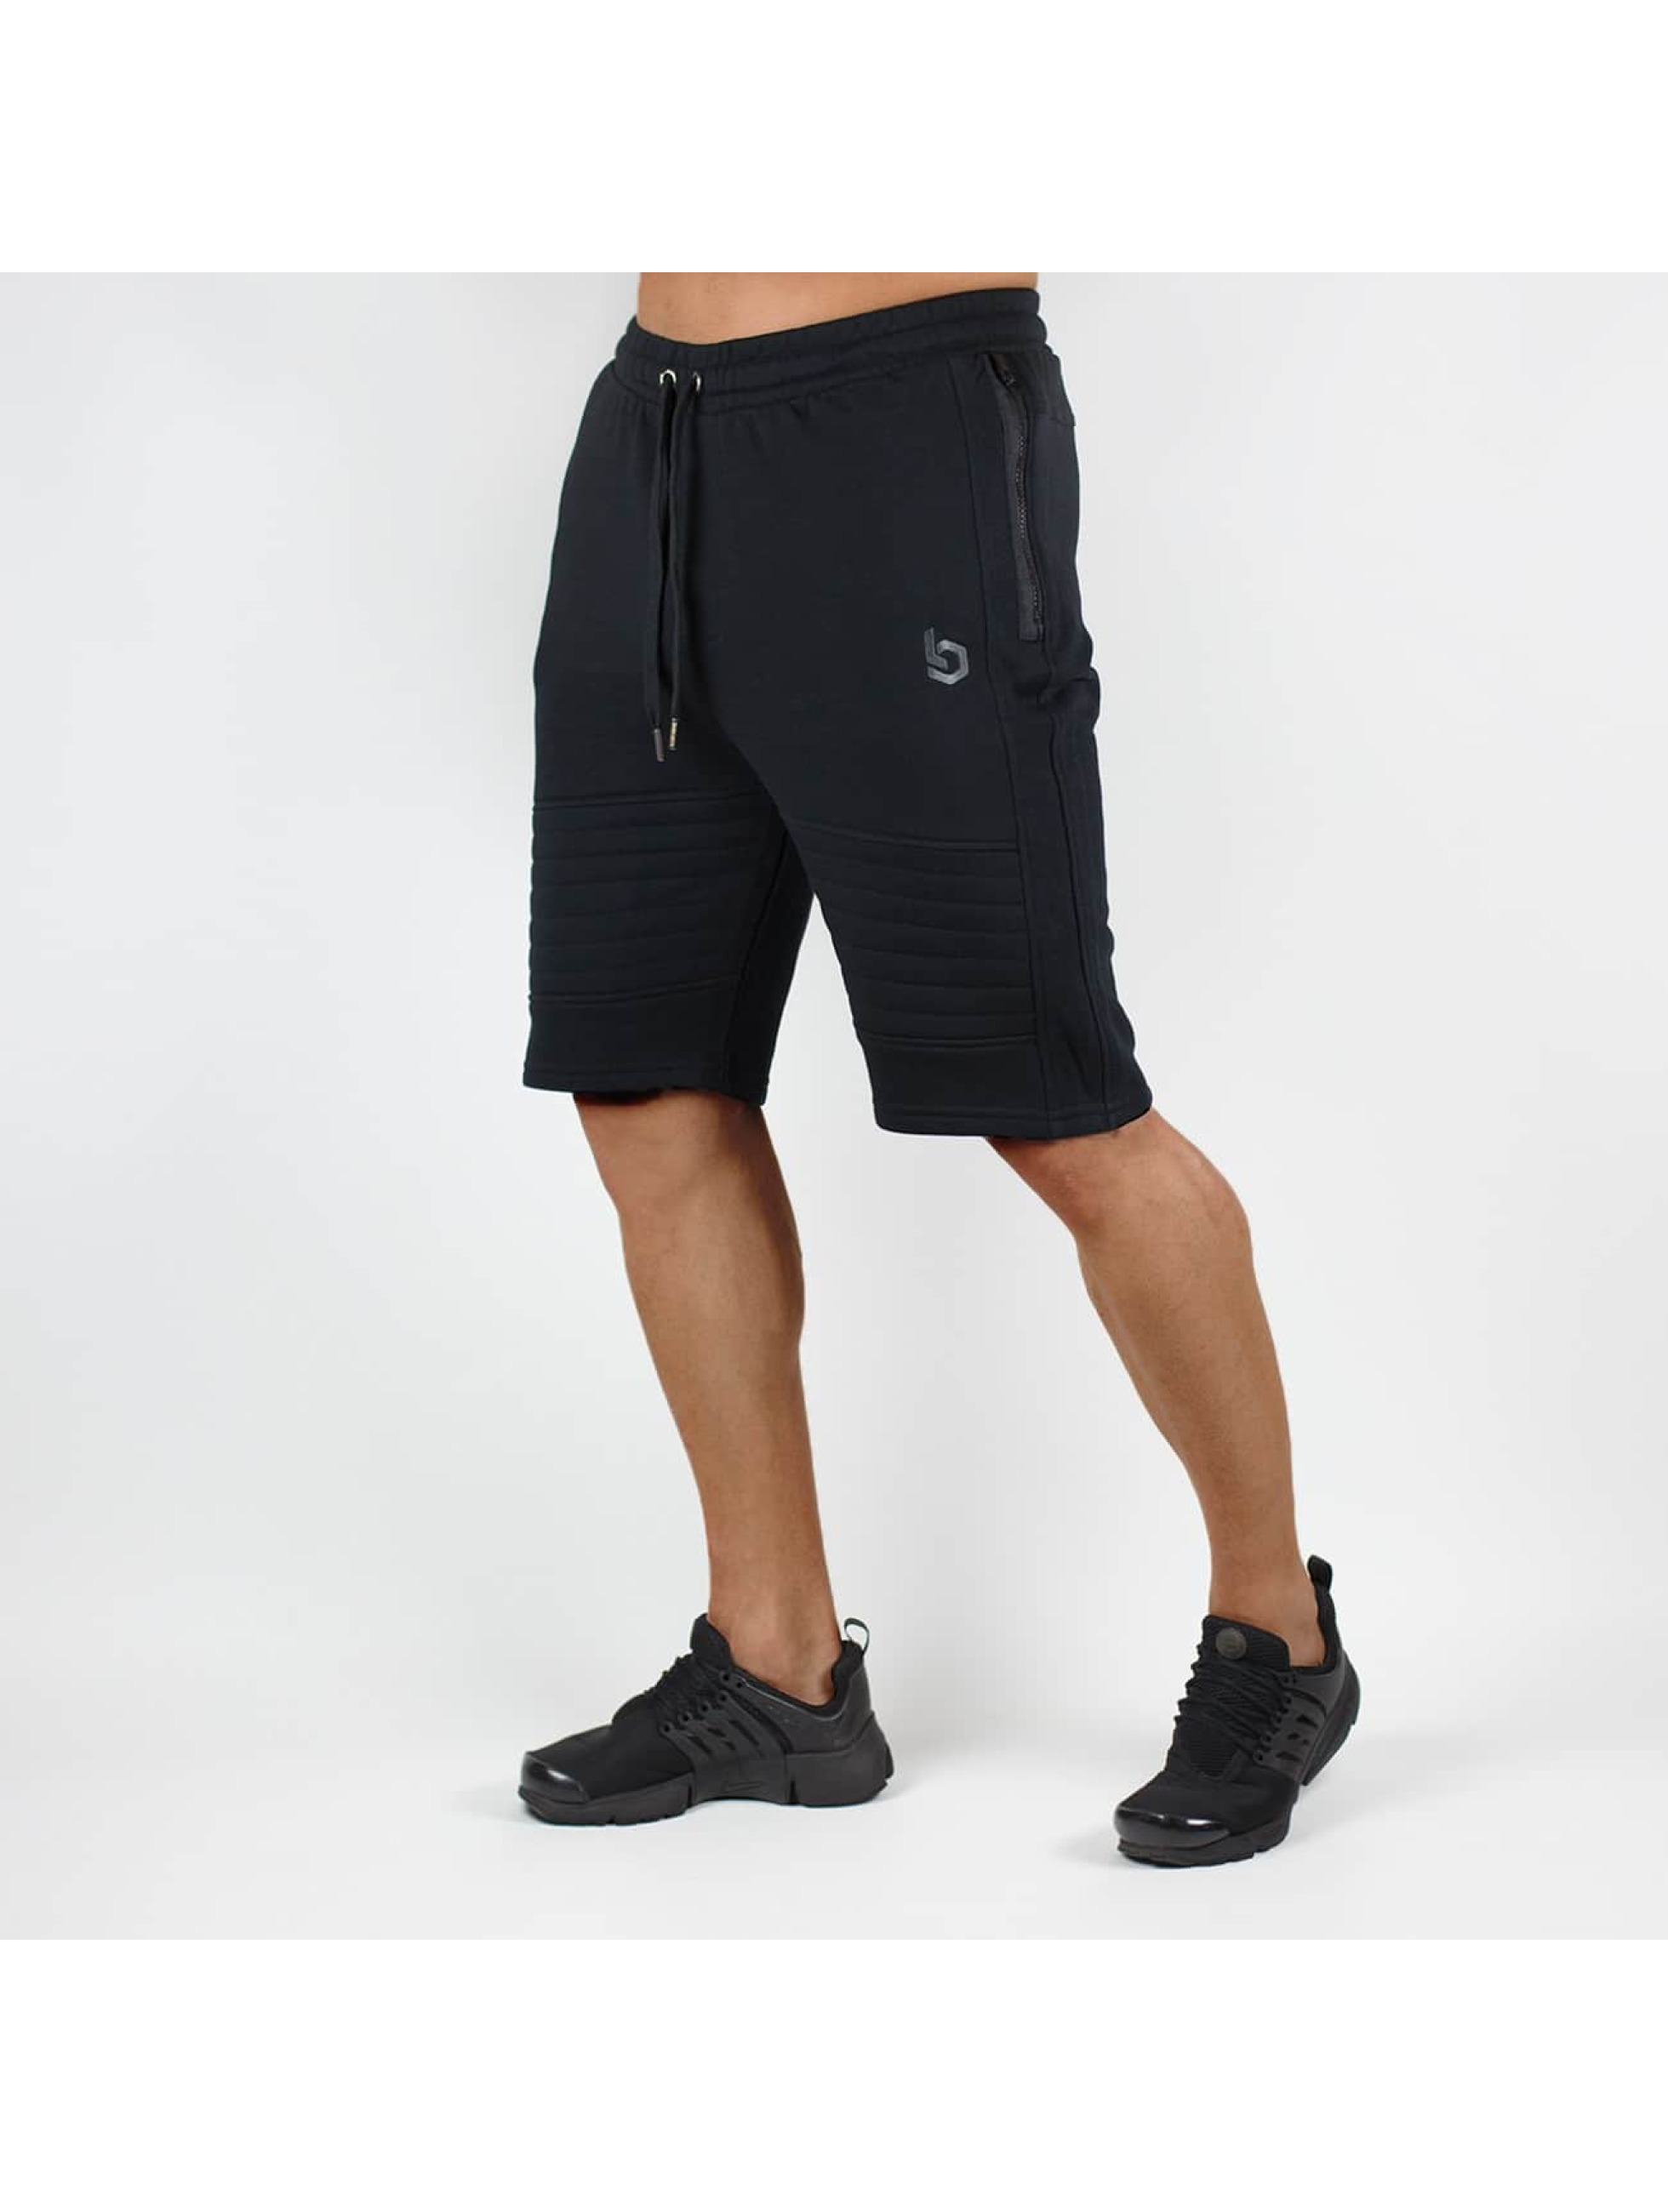 Beyond Limits Short Baseline black